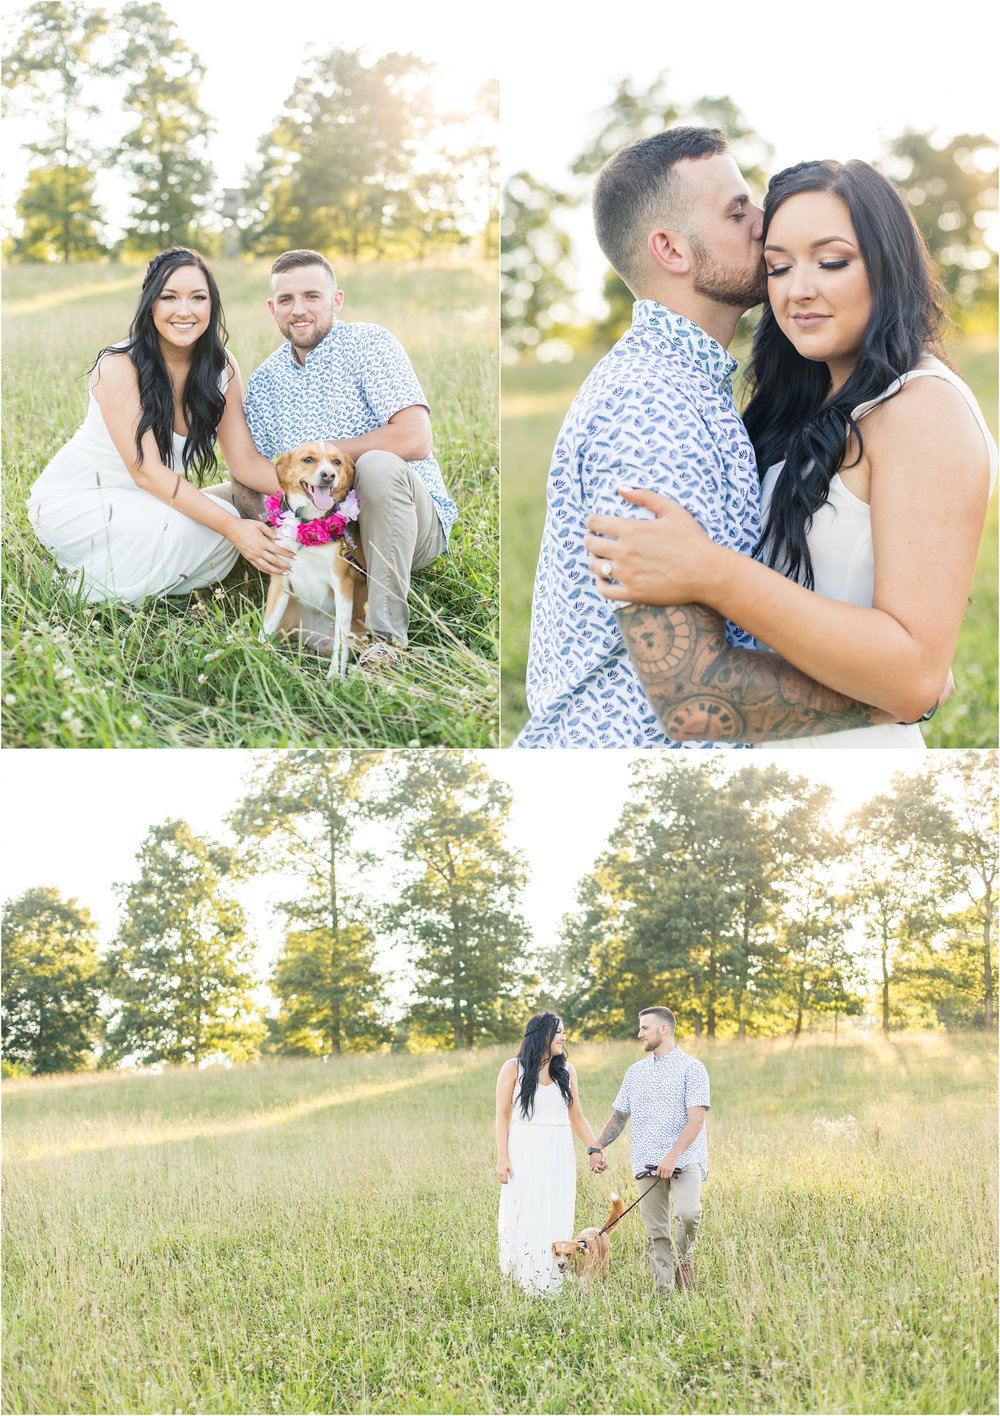 Savannah Eve Photography- Turnbill-Gilgan Engagement Photos-3.jpg